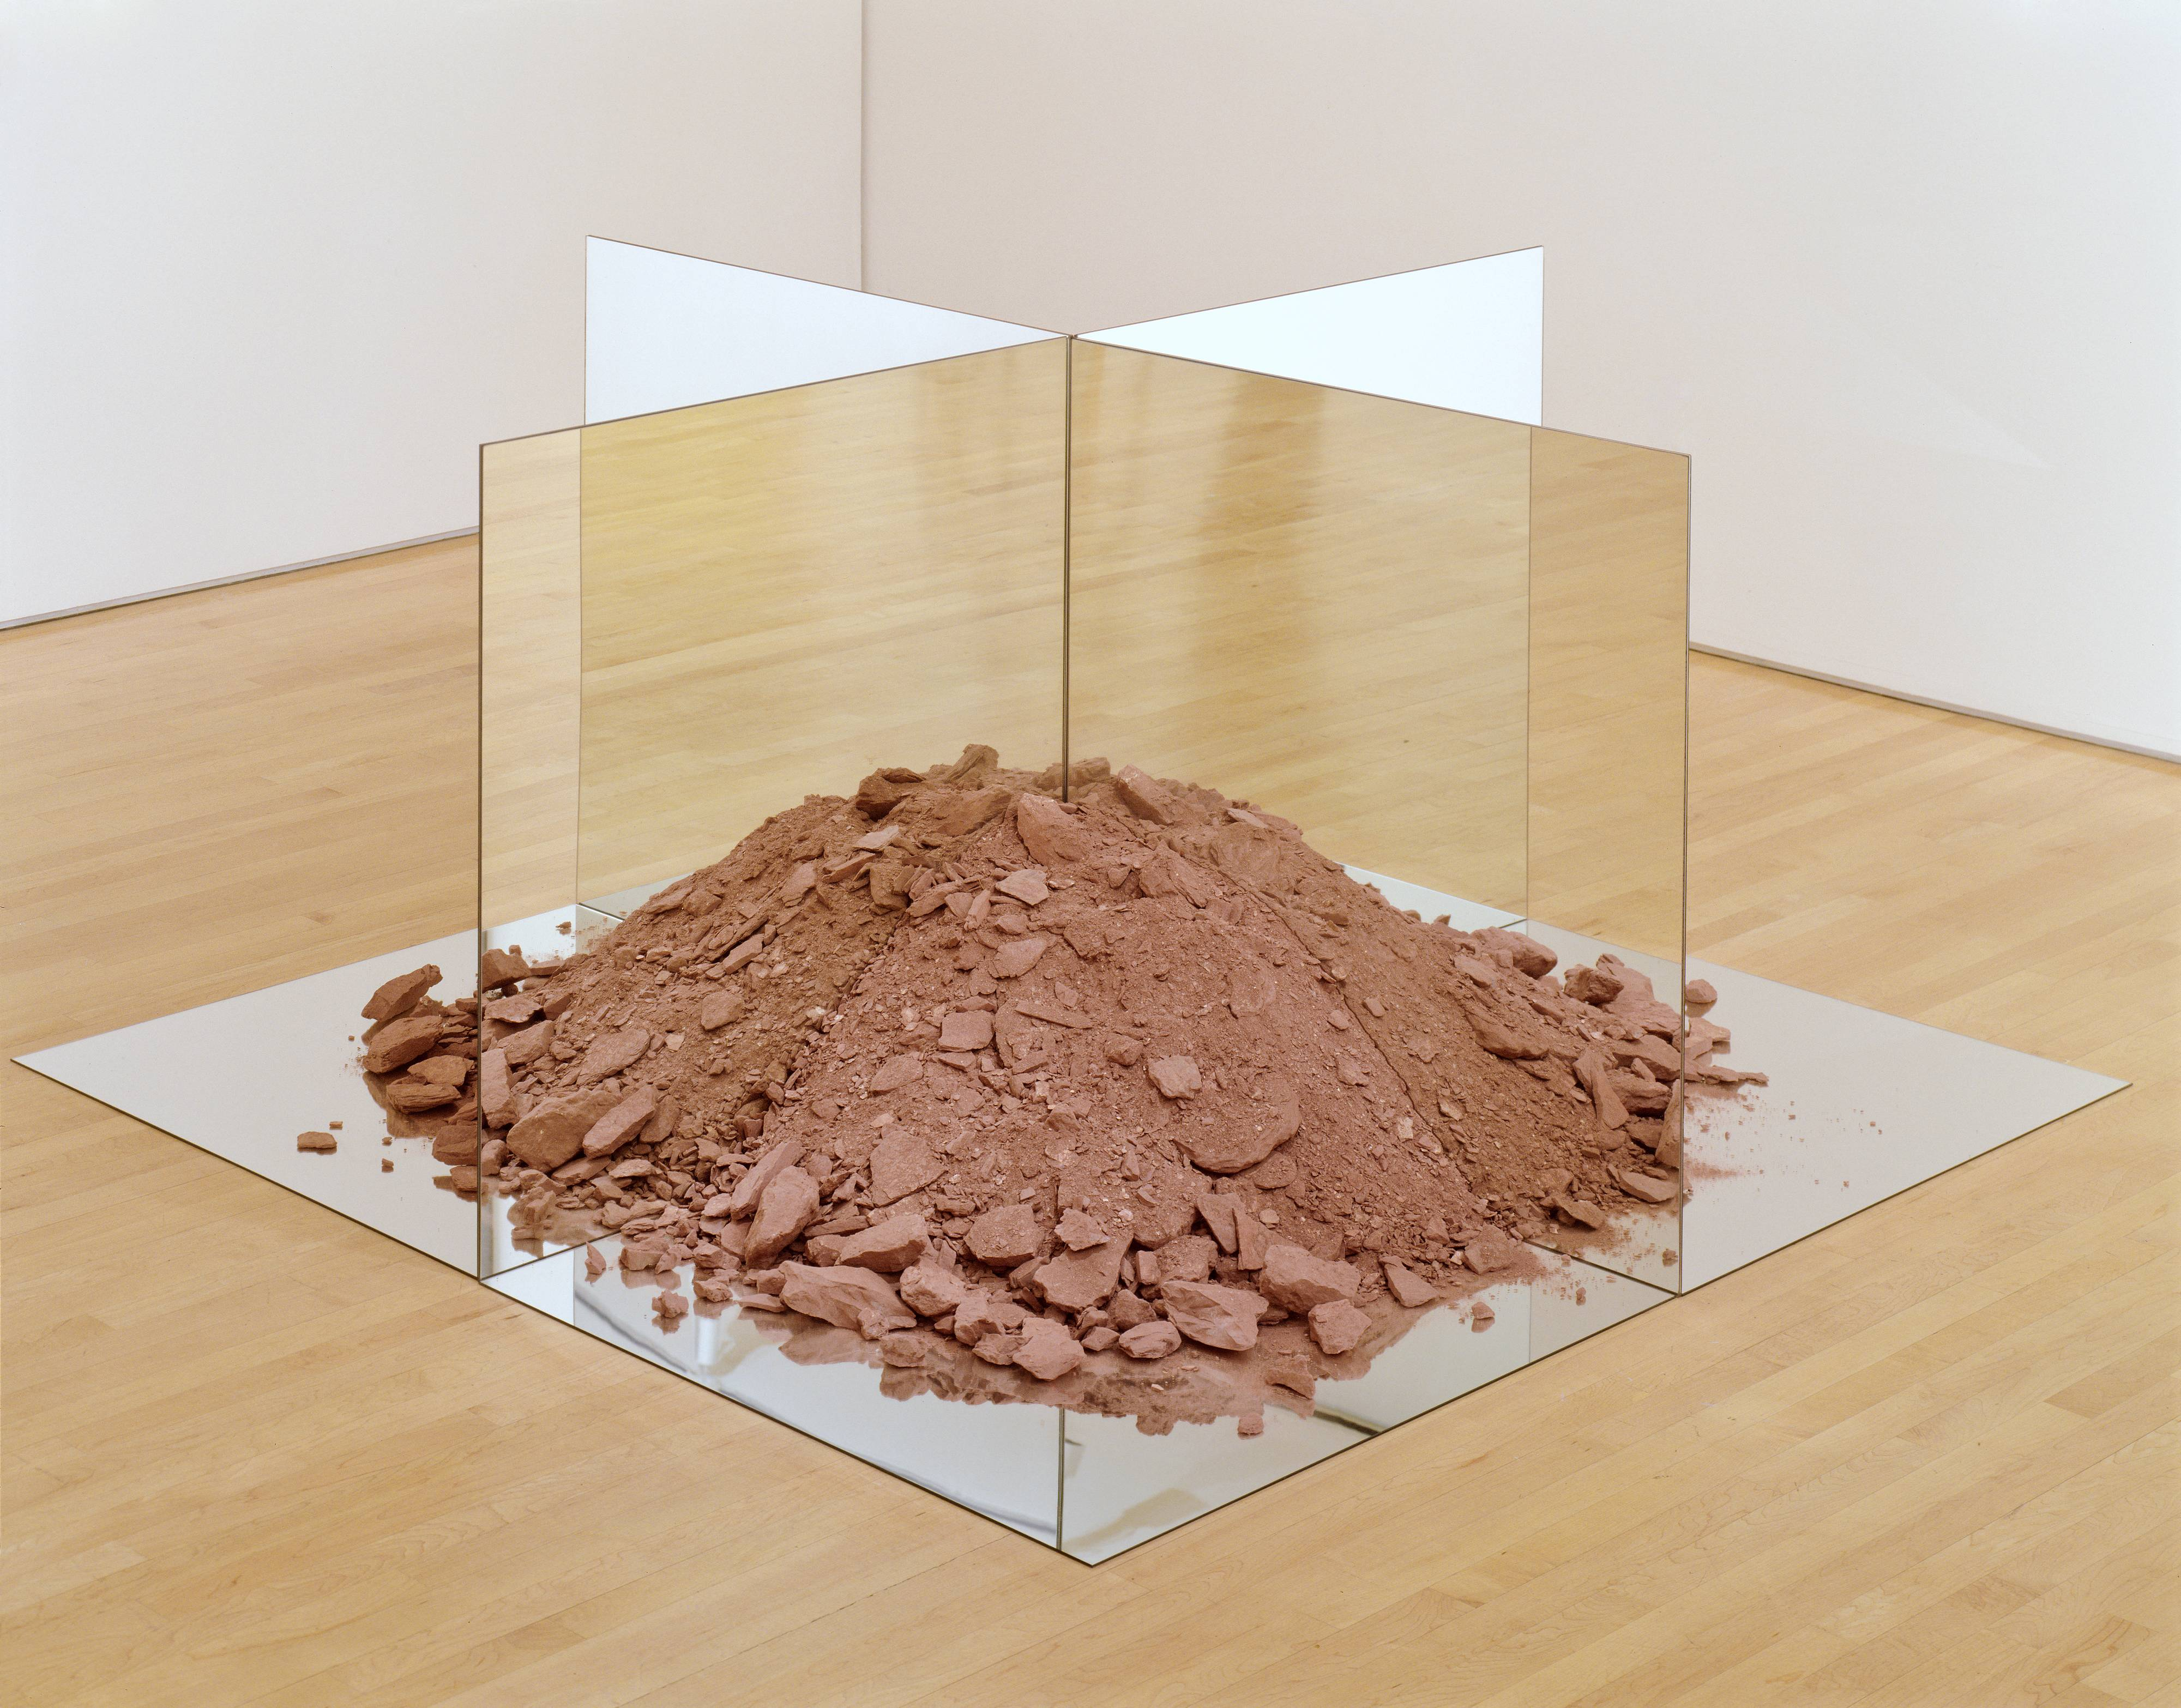 <p>The base of this sculpture is a six foot square mirror lying flat on the floor. Standing upright on top of it are four three foot square double-sided mirrors which form a cross, dividing the base into equal quadrants. Inside the resulting spaces are piles of dry terra-cotta soil, heaped up toward the apex of the mirrored walls. Although each section only houses one quarter of a mound of soil, the mound looks complete from every angle, due to the reflections in the mirrored walls. The sandy red soil is full of red stones, and resembles crushed bricks. None of the mirrored panels have frames or visible supports; they appear to be supported solely by the mounds of soil.</p>